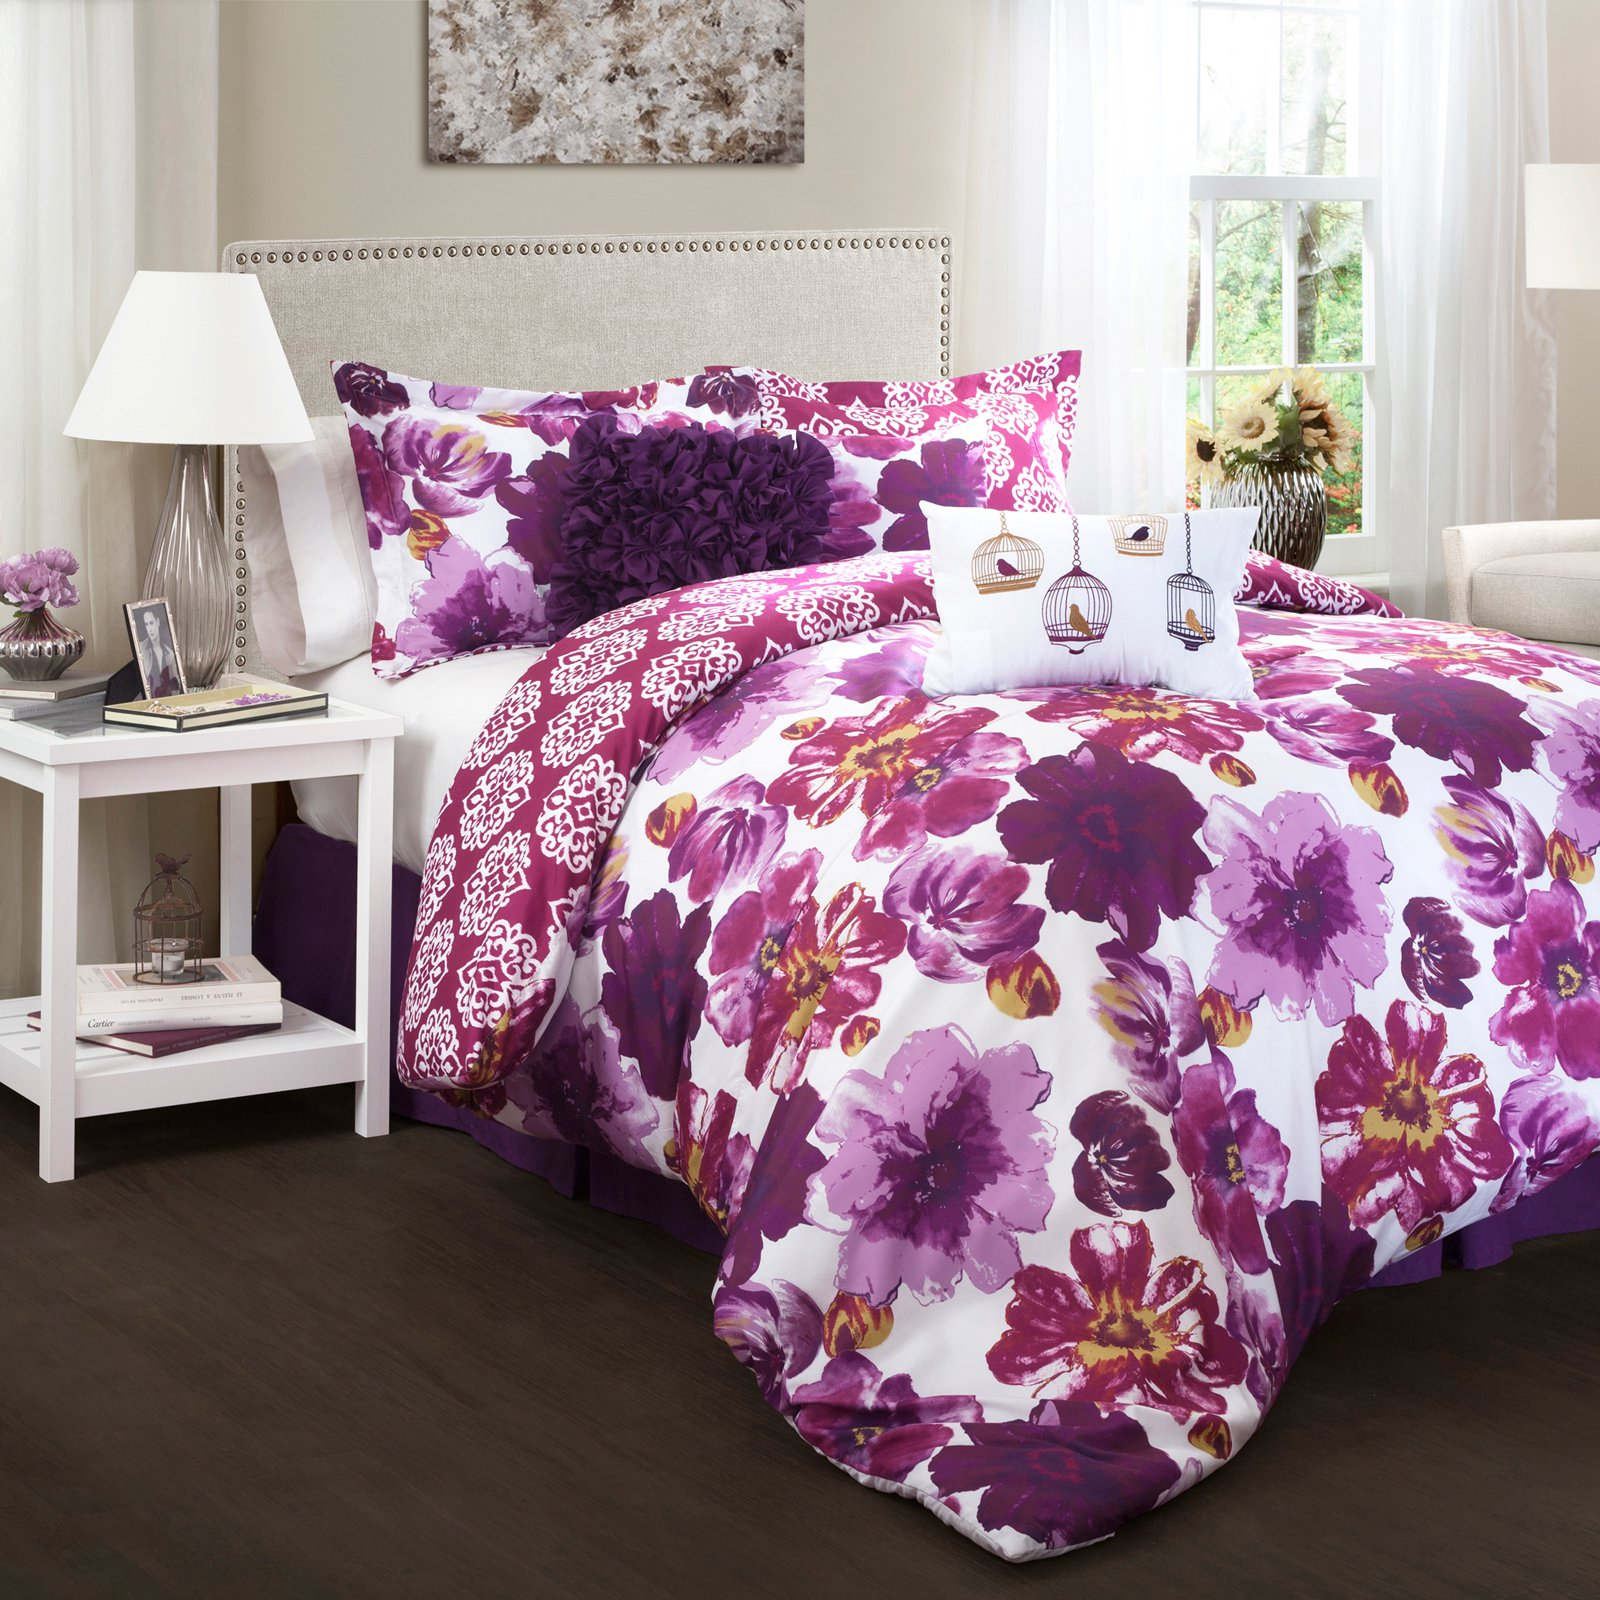 bed swans st lavender baby lover gray outstanding purplend sets and queen full devonshire wonderful picture king grey canada comforter purple collection lilac sensational bedding shocking andrple